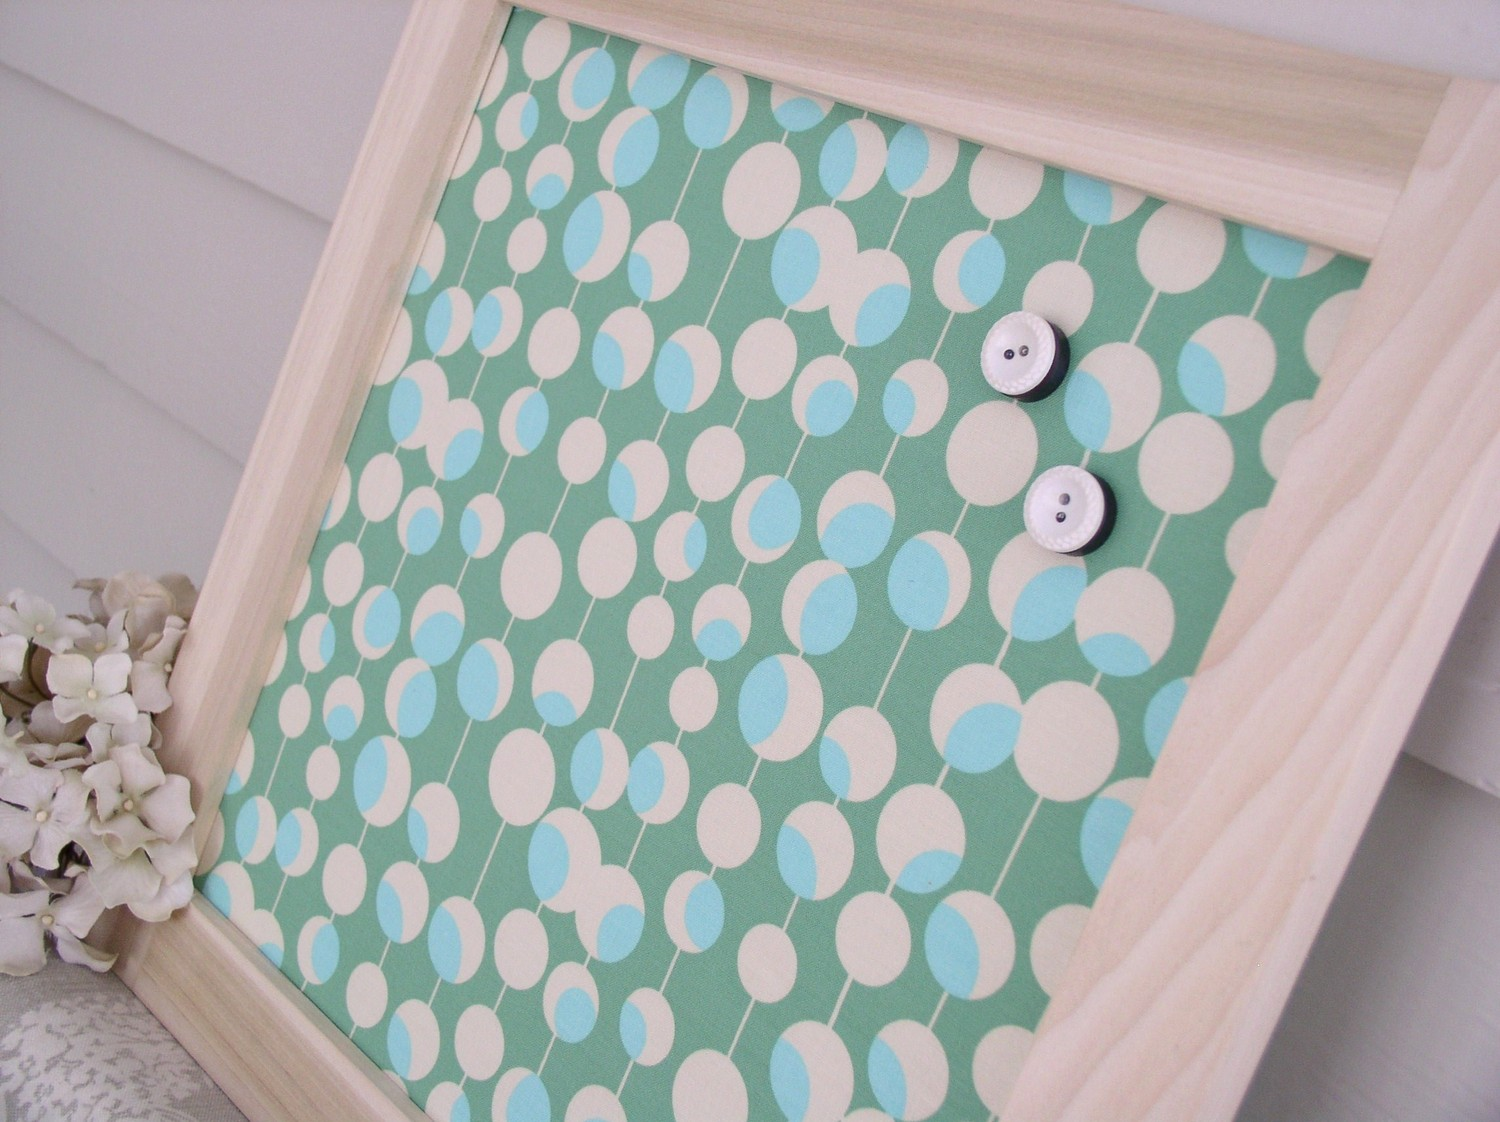 Ordinaire Elegant Decorative Magnetic Board With Wooden Frame And Polka Green Fabric  For Background For Memo And